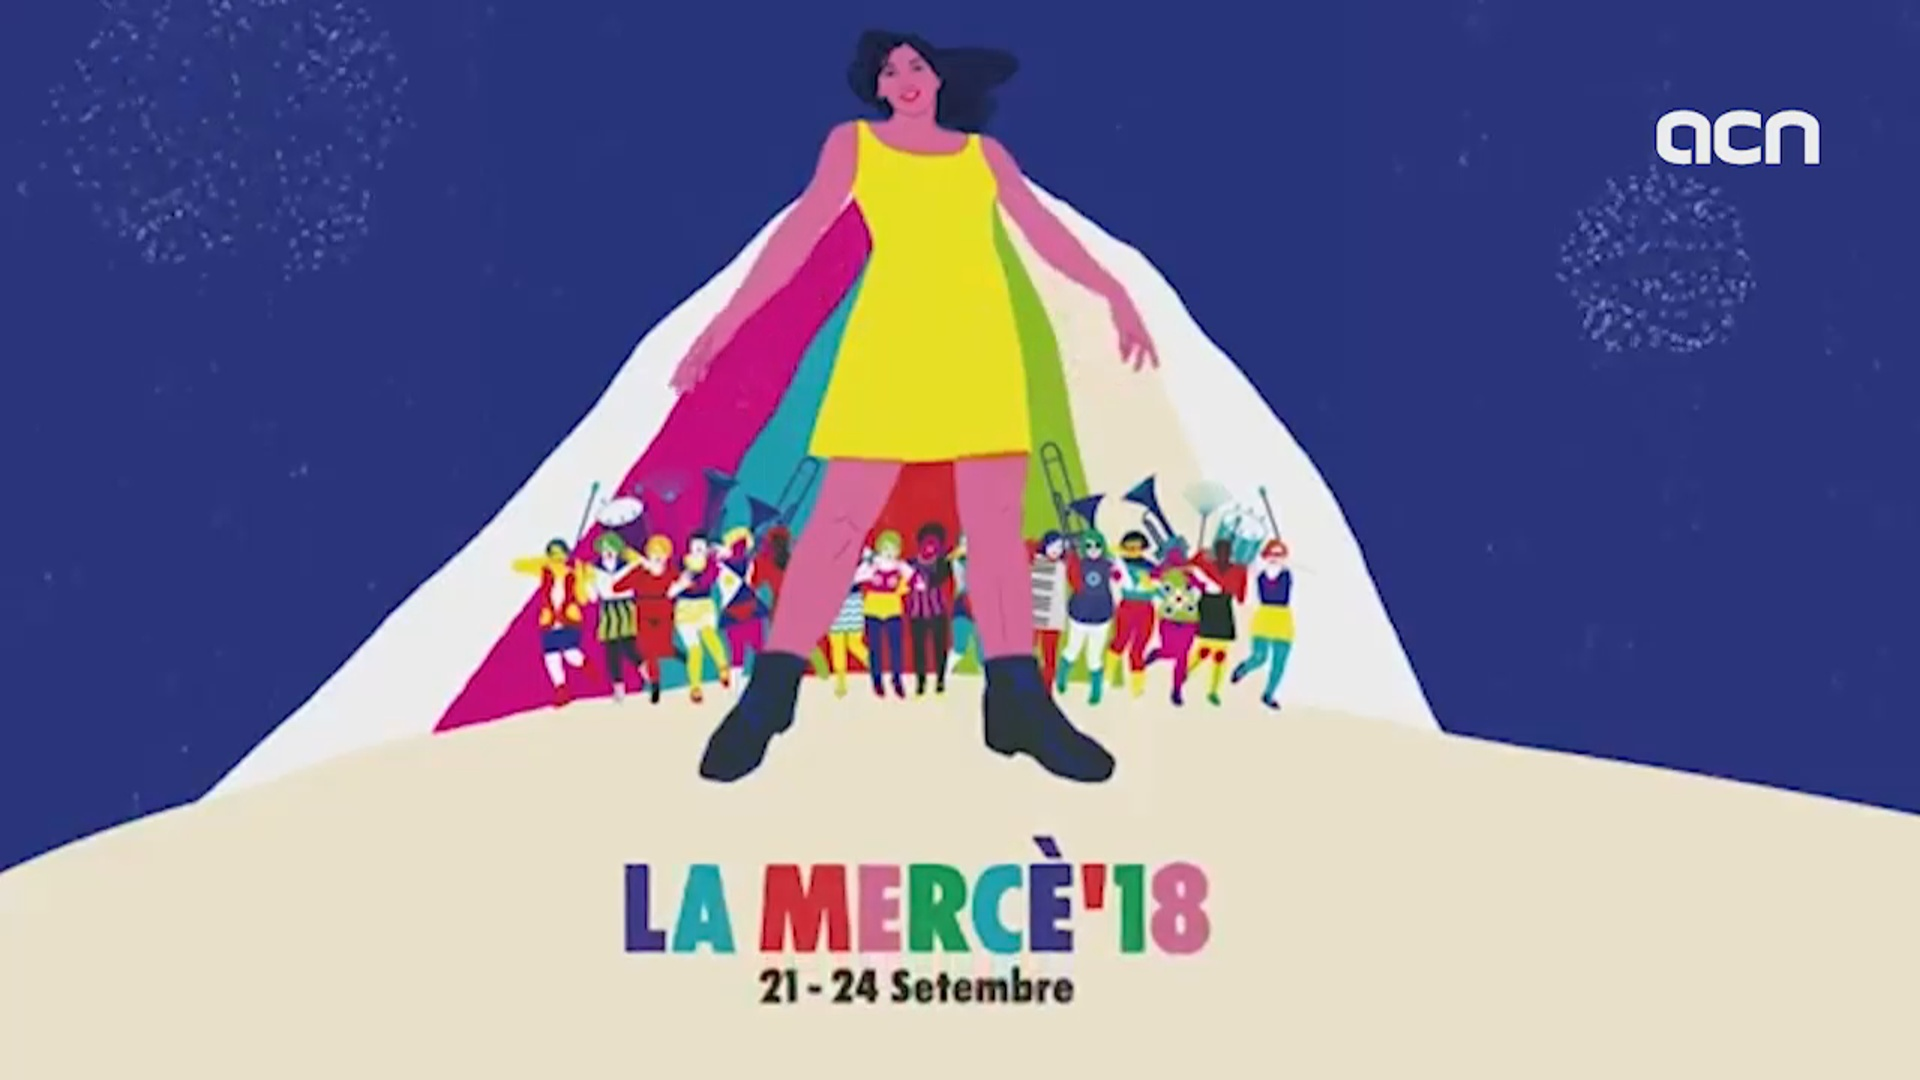 La Mercè 2018: what to do